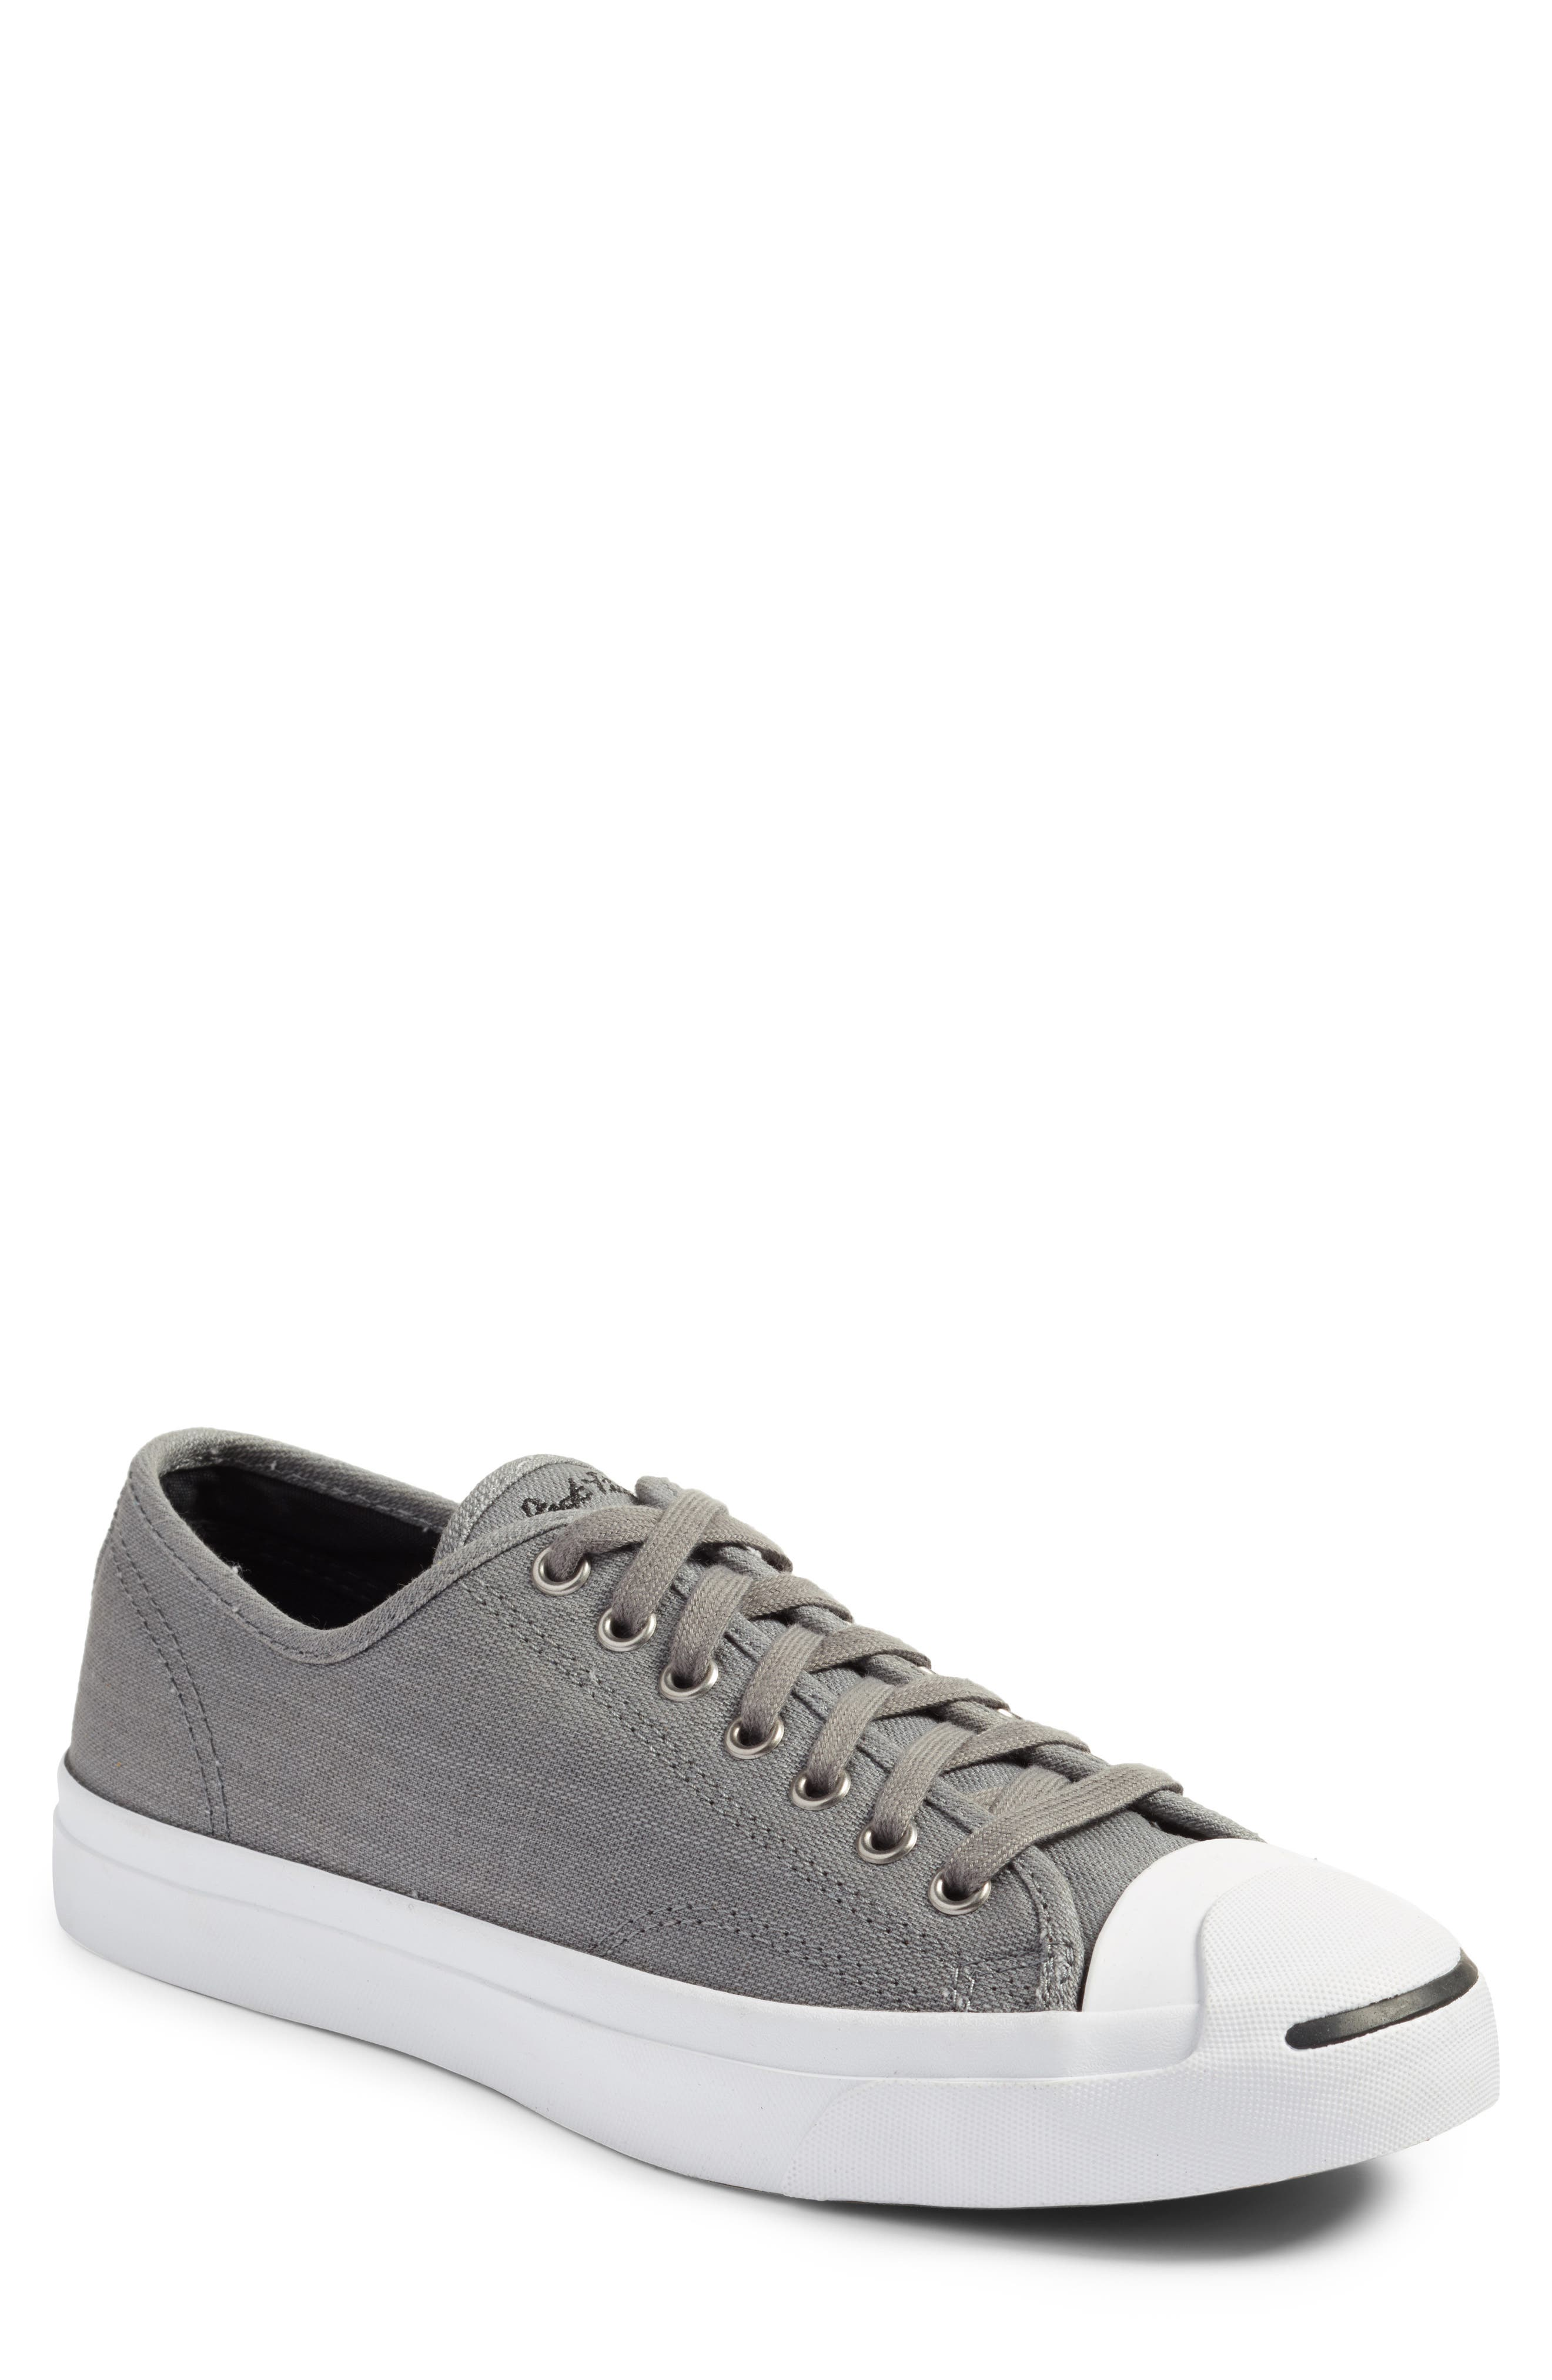 Alternate Image 1 Selected - Converse Jack Purcell Ox Sneaker (Men)